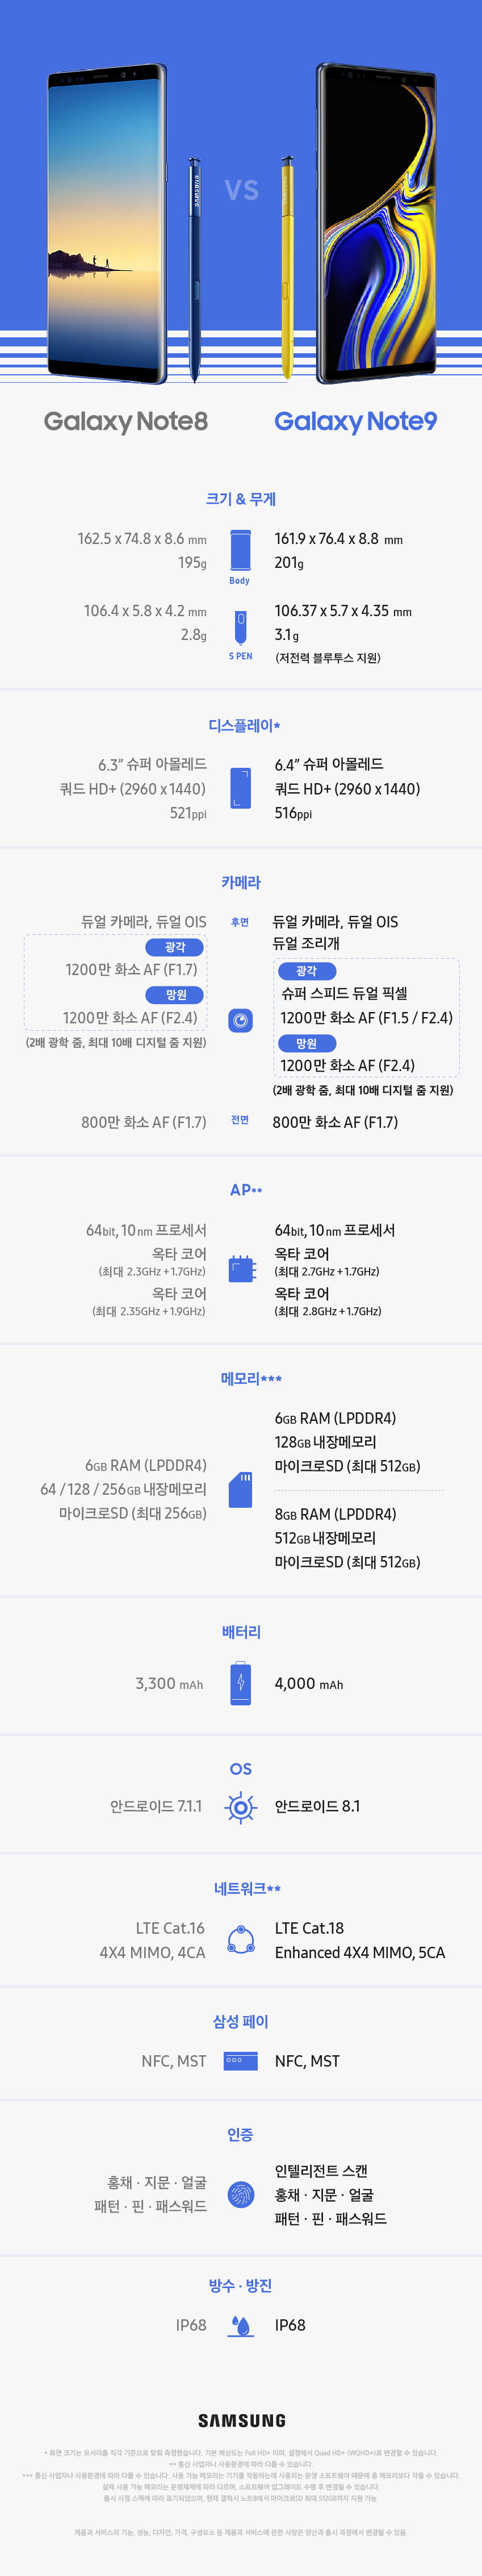 Galaxy-Note9-Spec-Comparison-KR.jpg